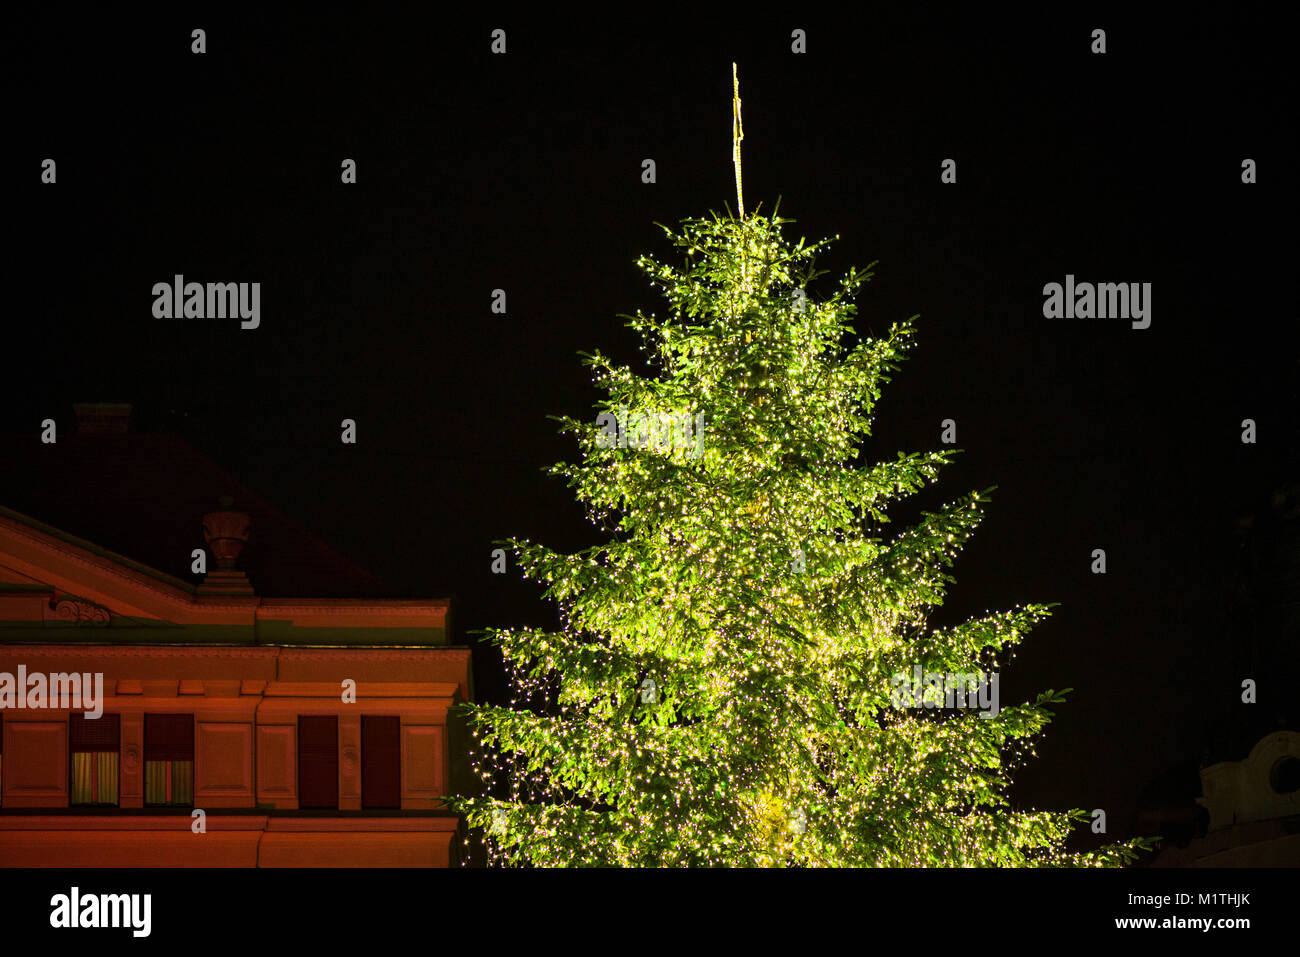 Too Big Christmas Tree House Stock Photos & Too Big Christmas Tree ...